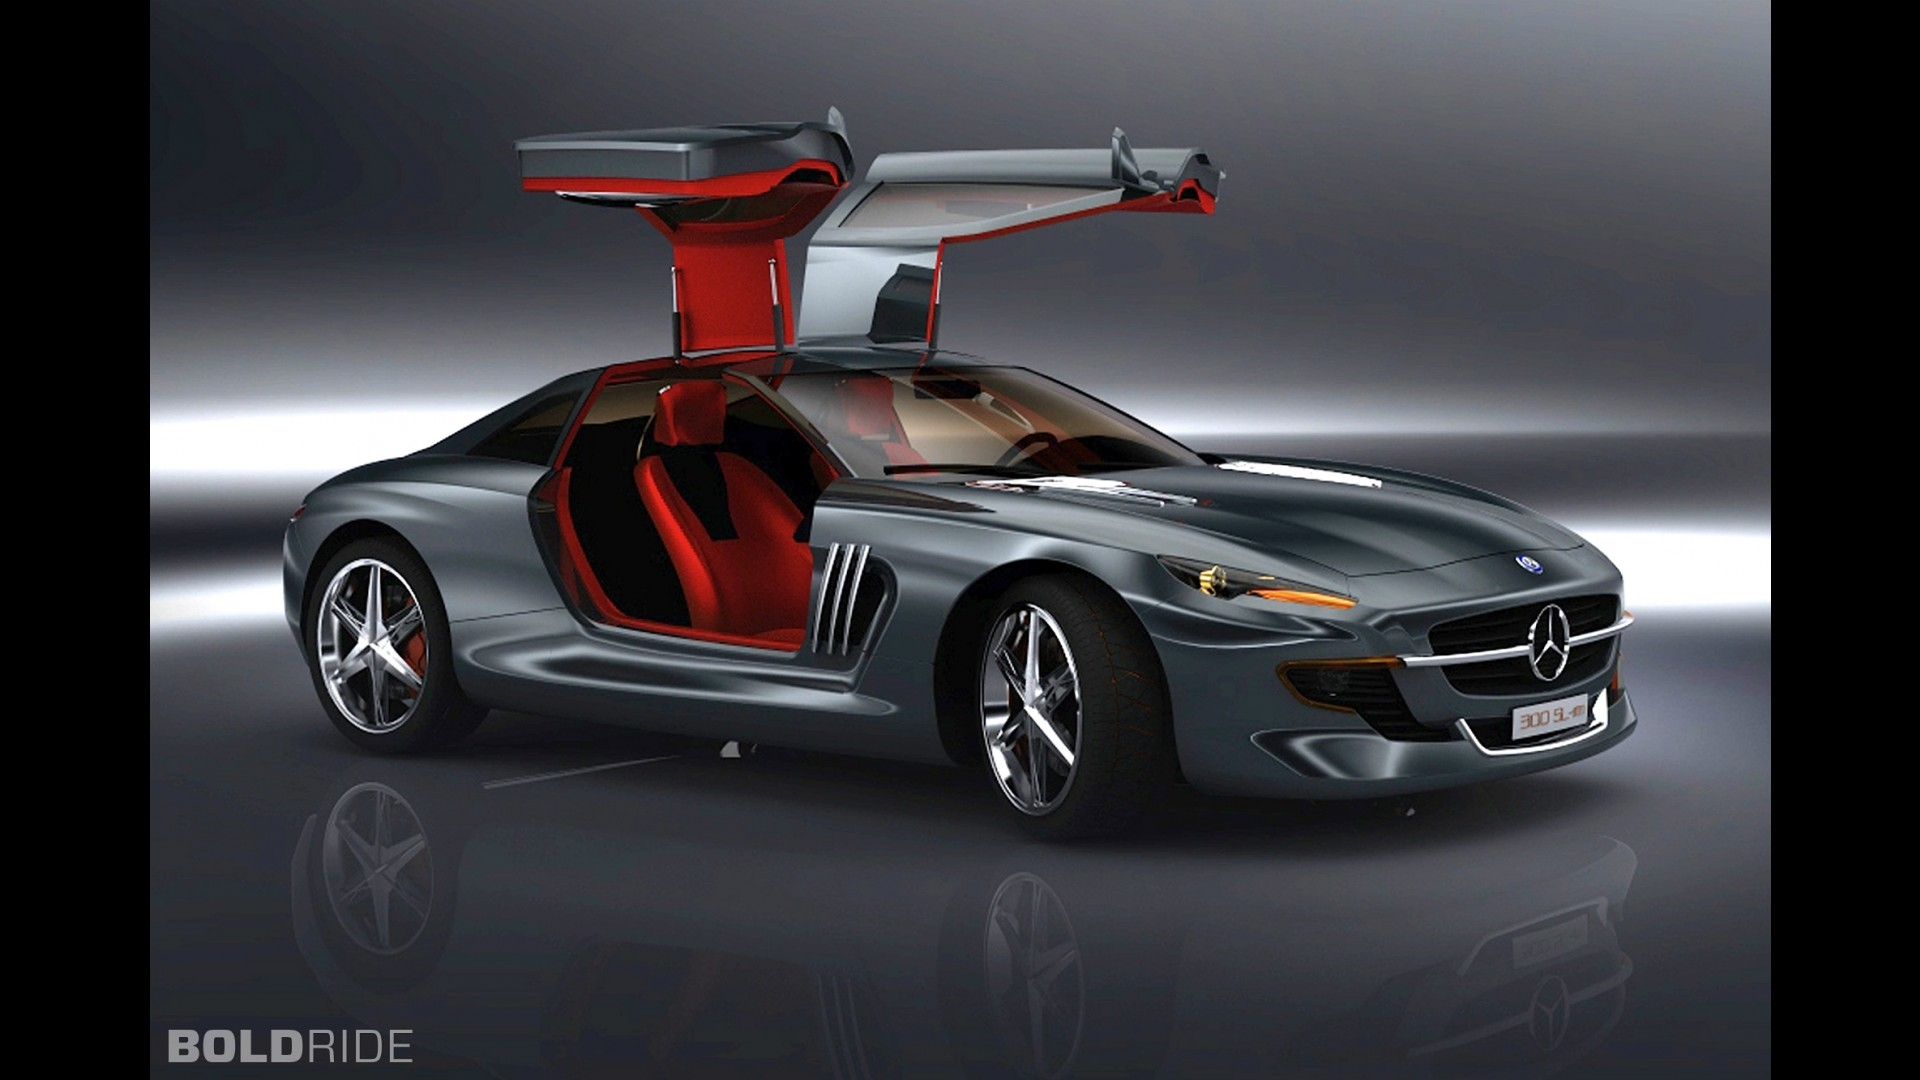 Mercedes benz 300 sl gullwing concept by slimane toubal for Mercedes benz 300